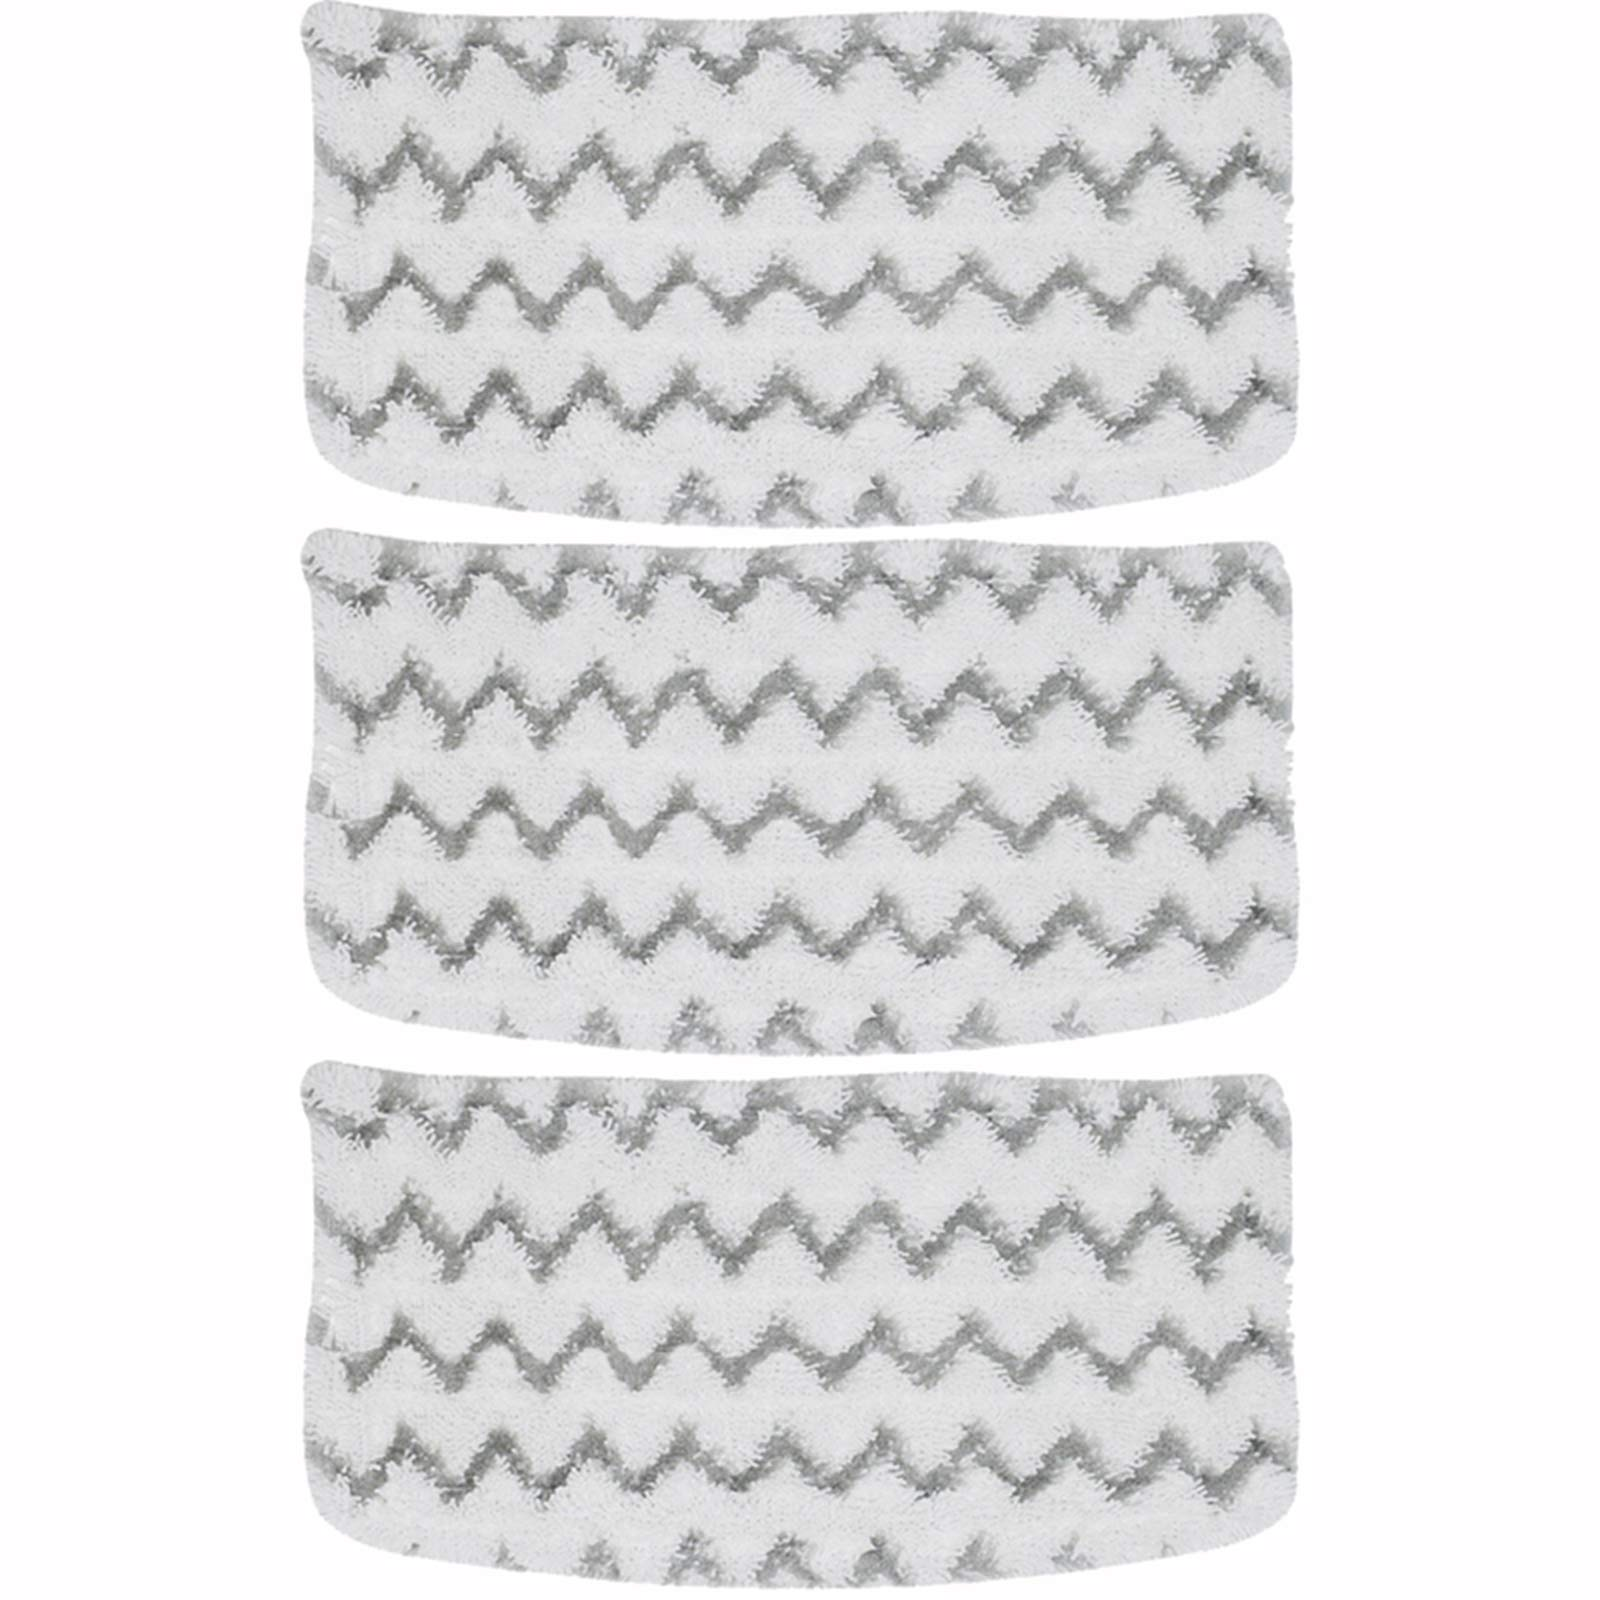 SHEAWA 3pcs Replacement Steam Mop Pads for Shark Vacuum S1000 S1000A S1000C S1000WM